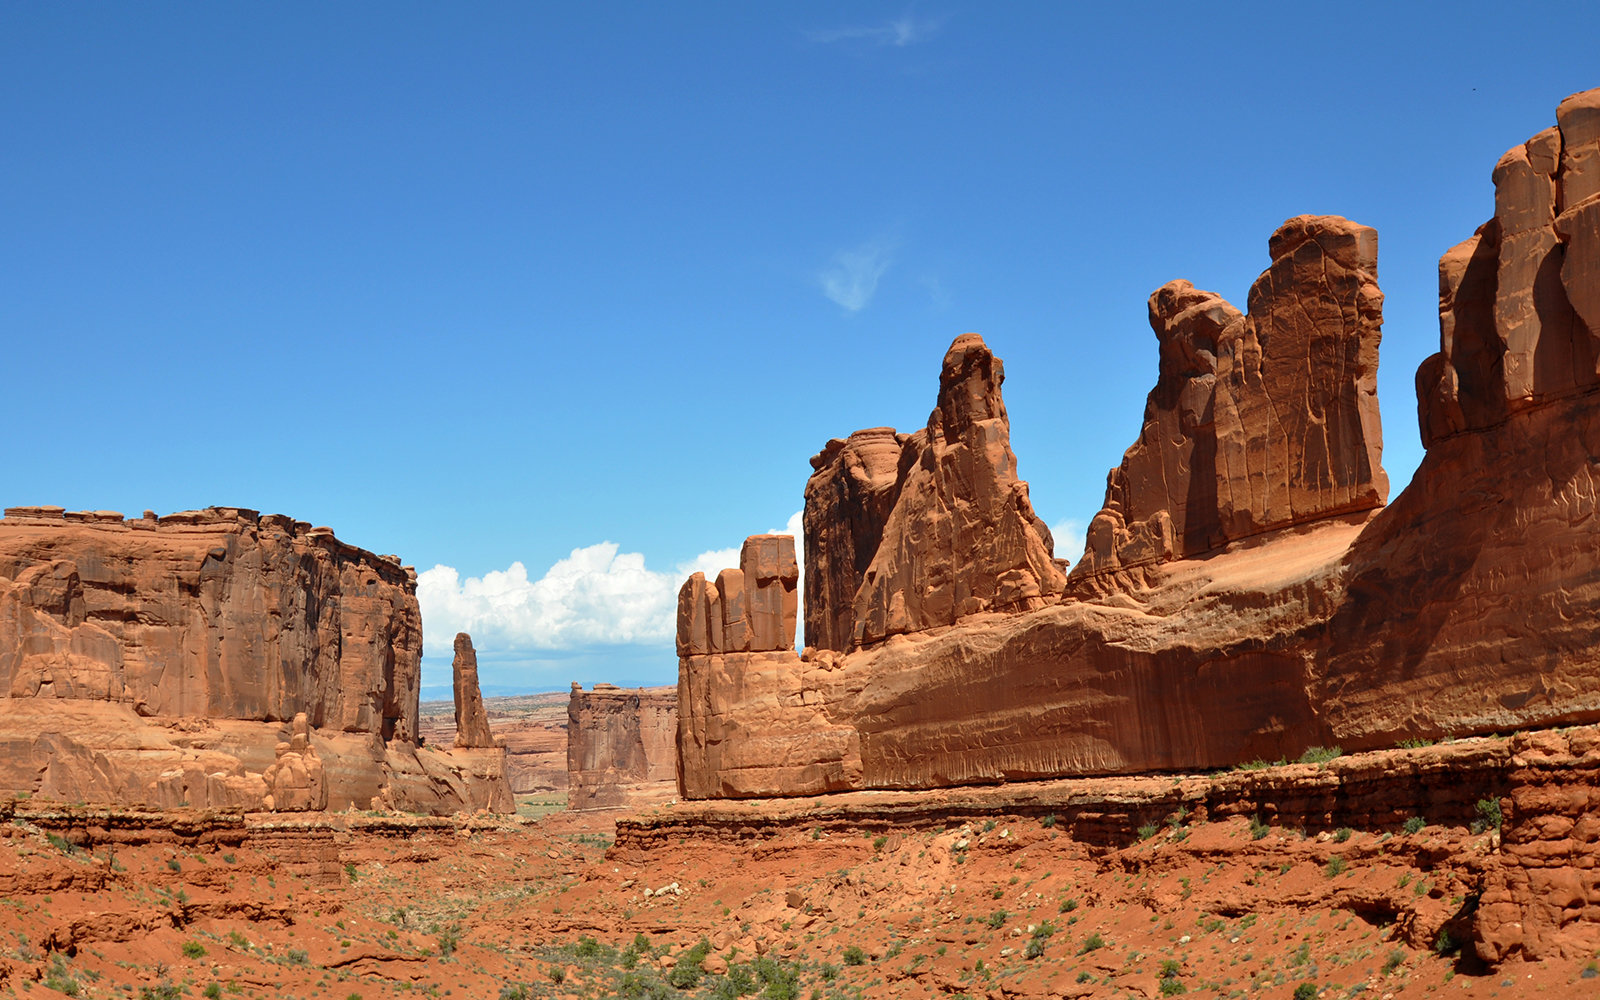 ARCHES NATIONAL PARK, UT - SEPTEMBER 20, 2011: Sandstone formations and canyon known as Park Avenue in Arches National Park near Moab, Utah. (Photo by Robert Alexander/Archive Photos/Getty Images)